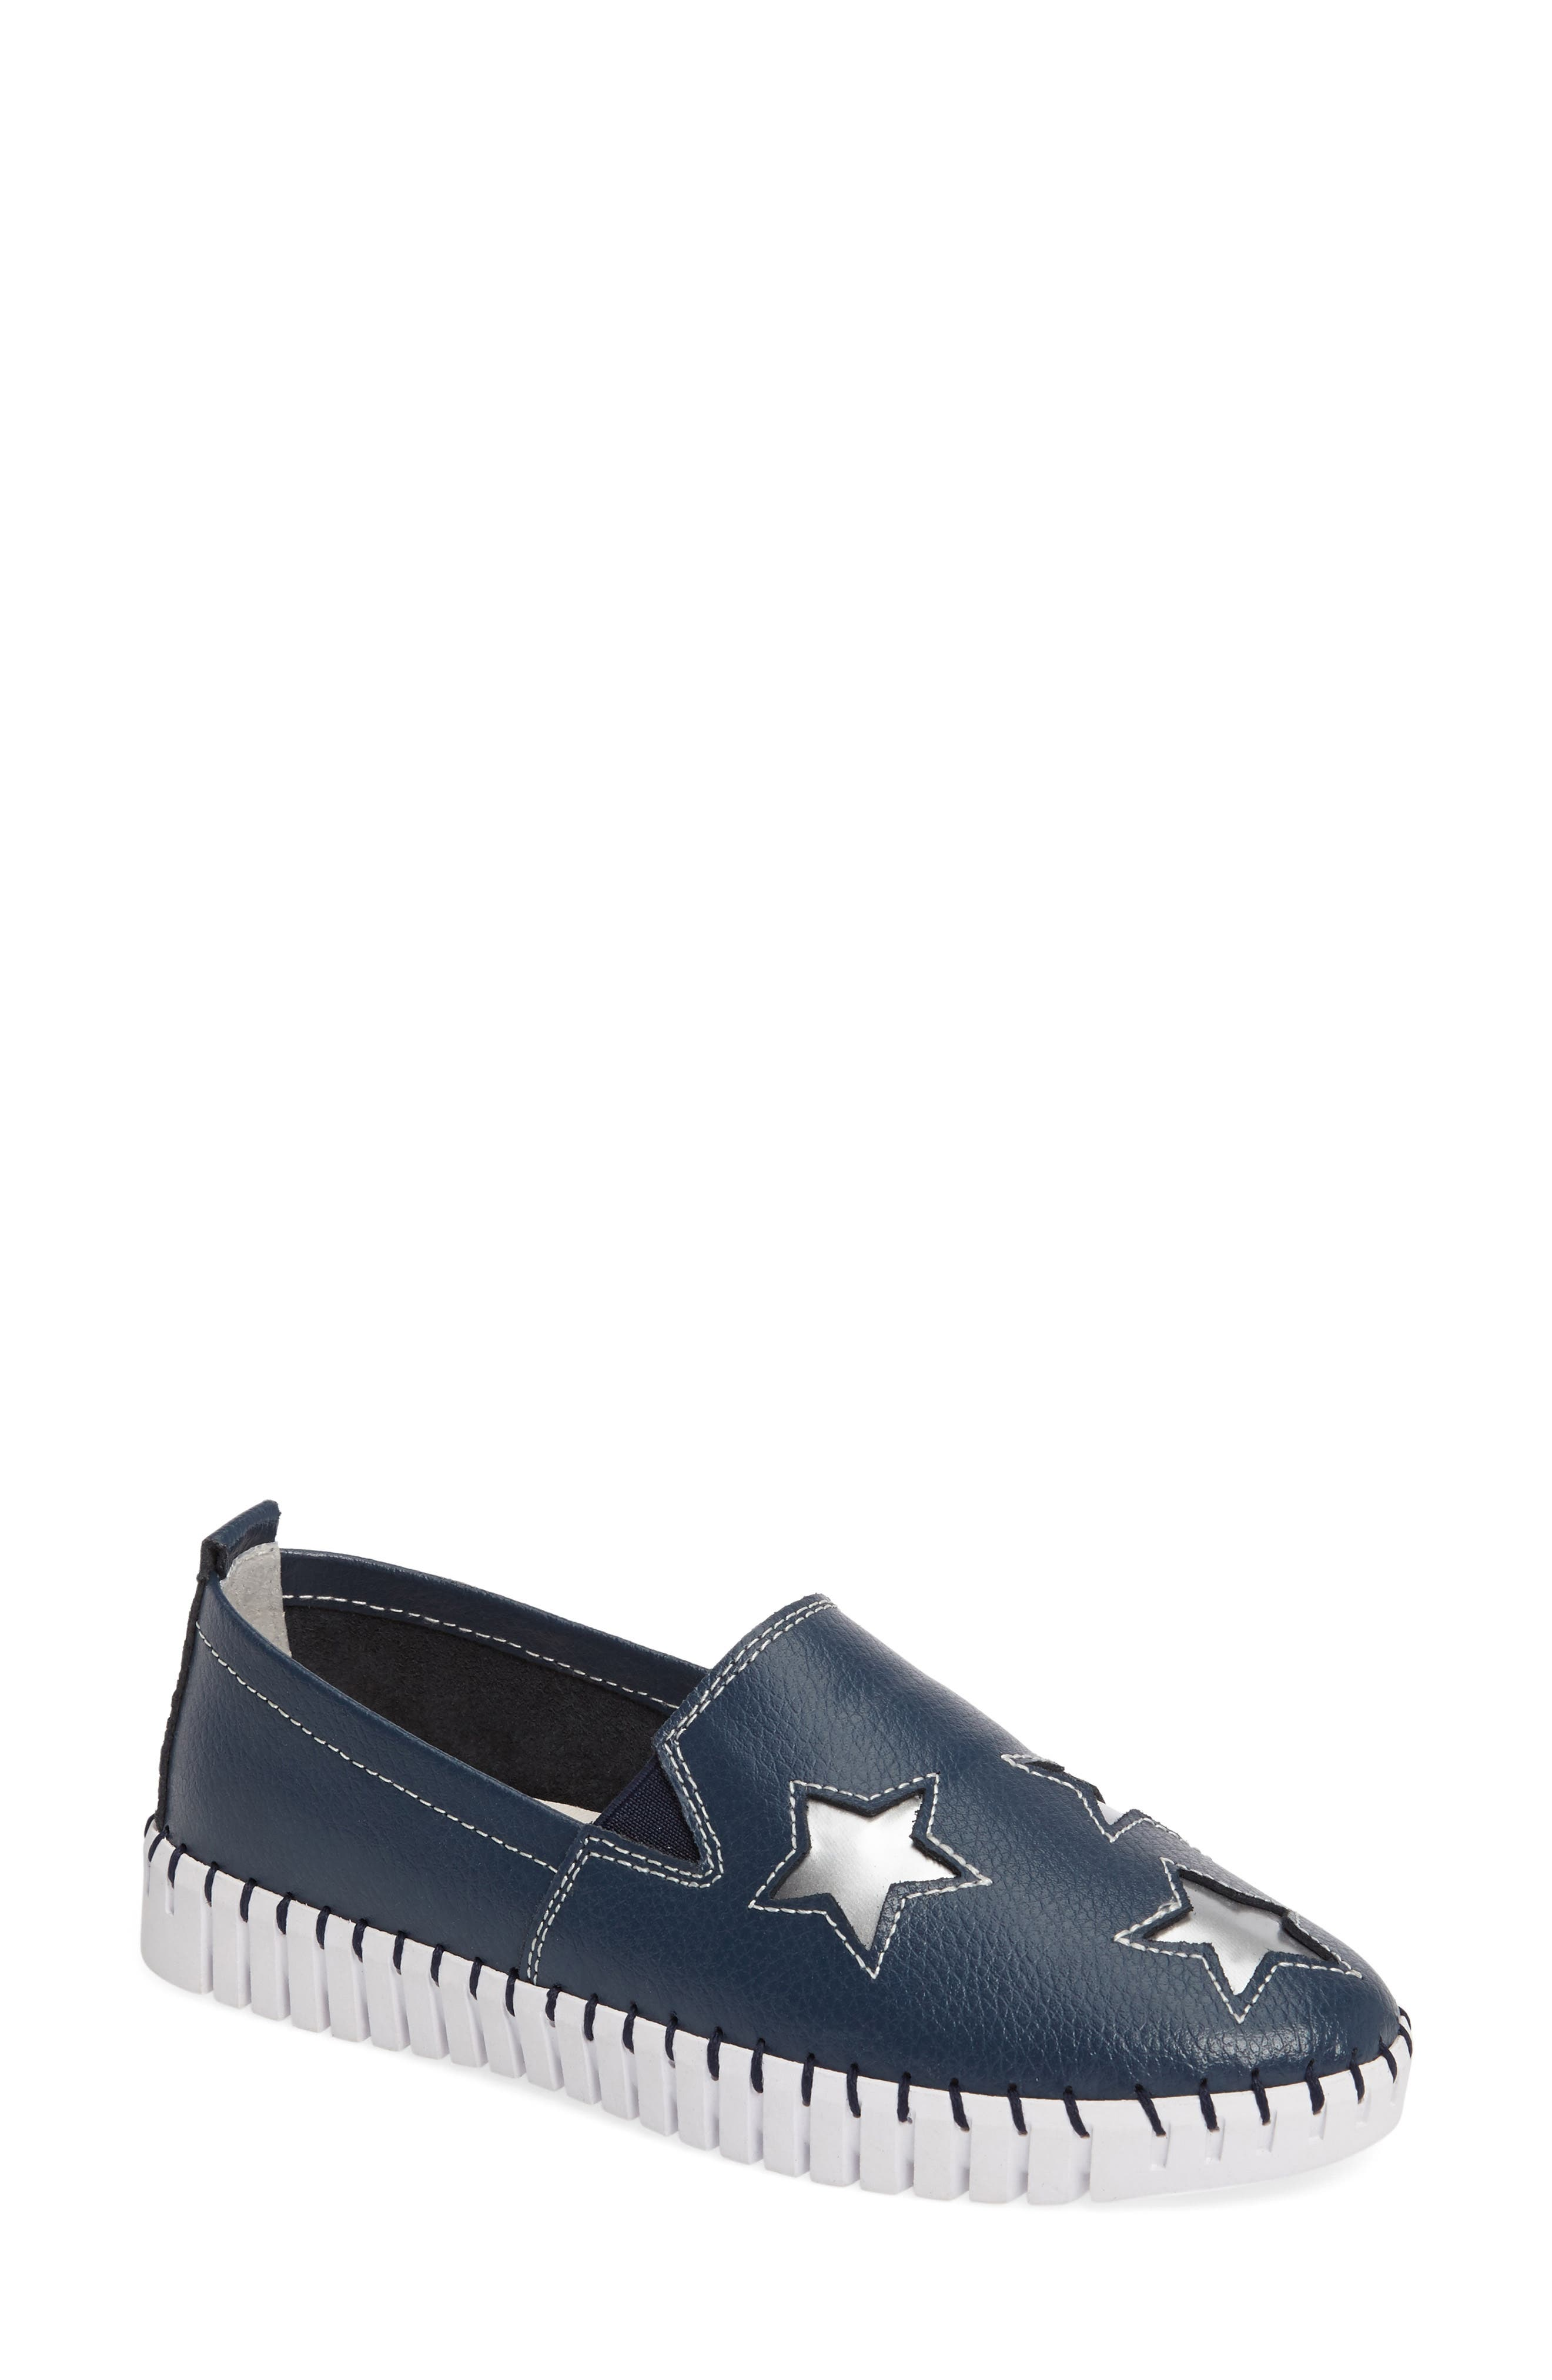 TW37 Slip-On Sneaker,                         Main,                         color, NAVY LEATHER